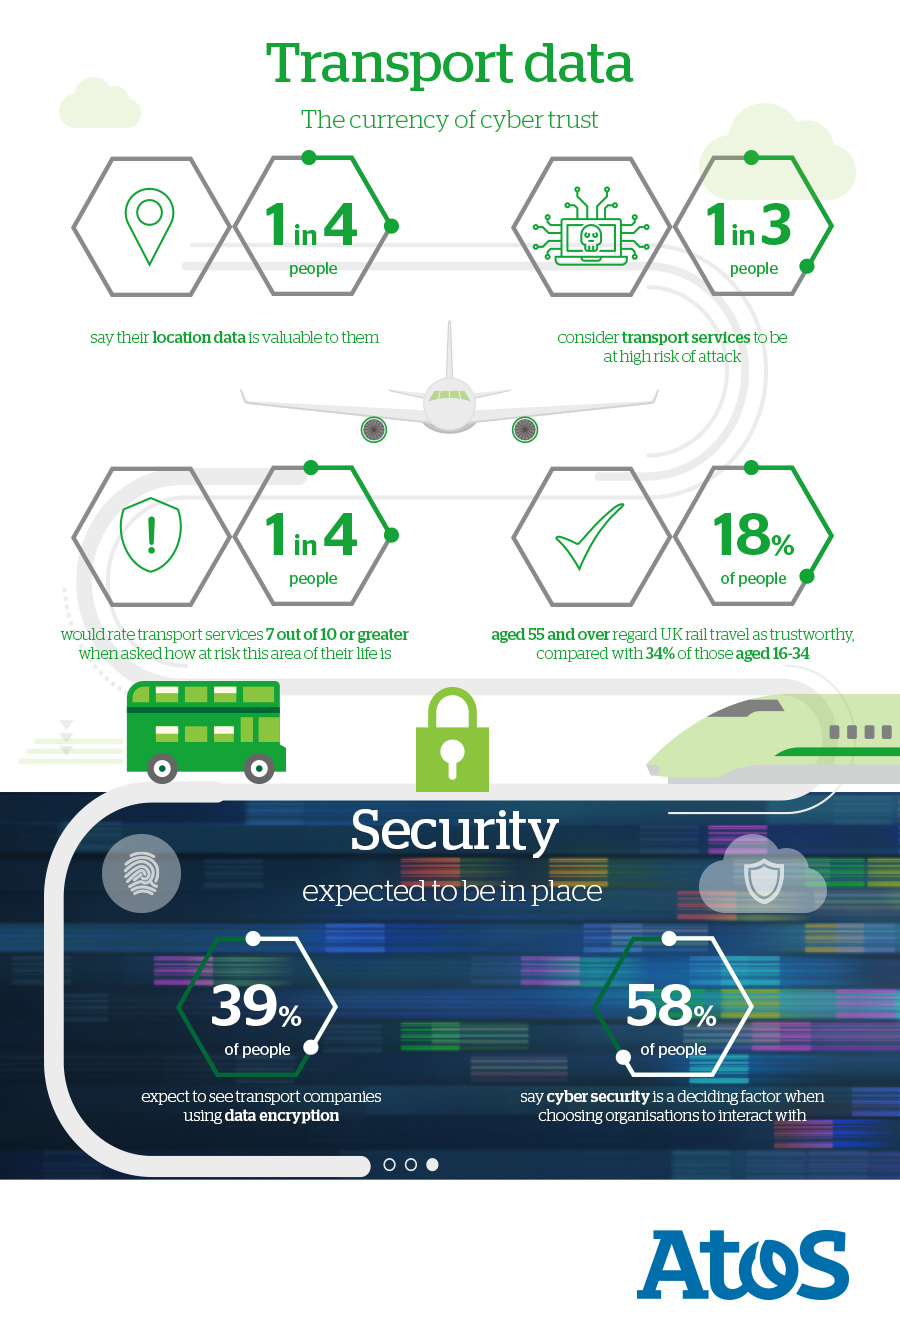 Transport: The currency of cyber trust - Atos